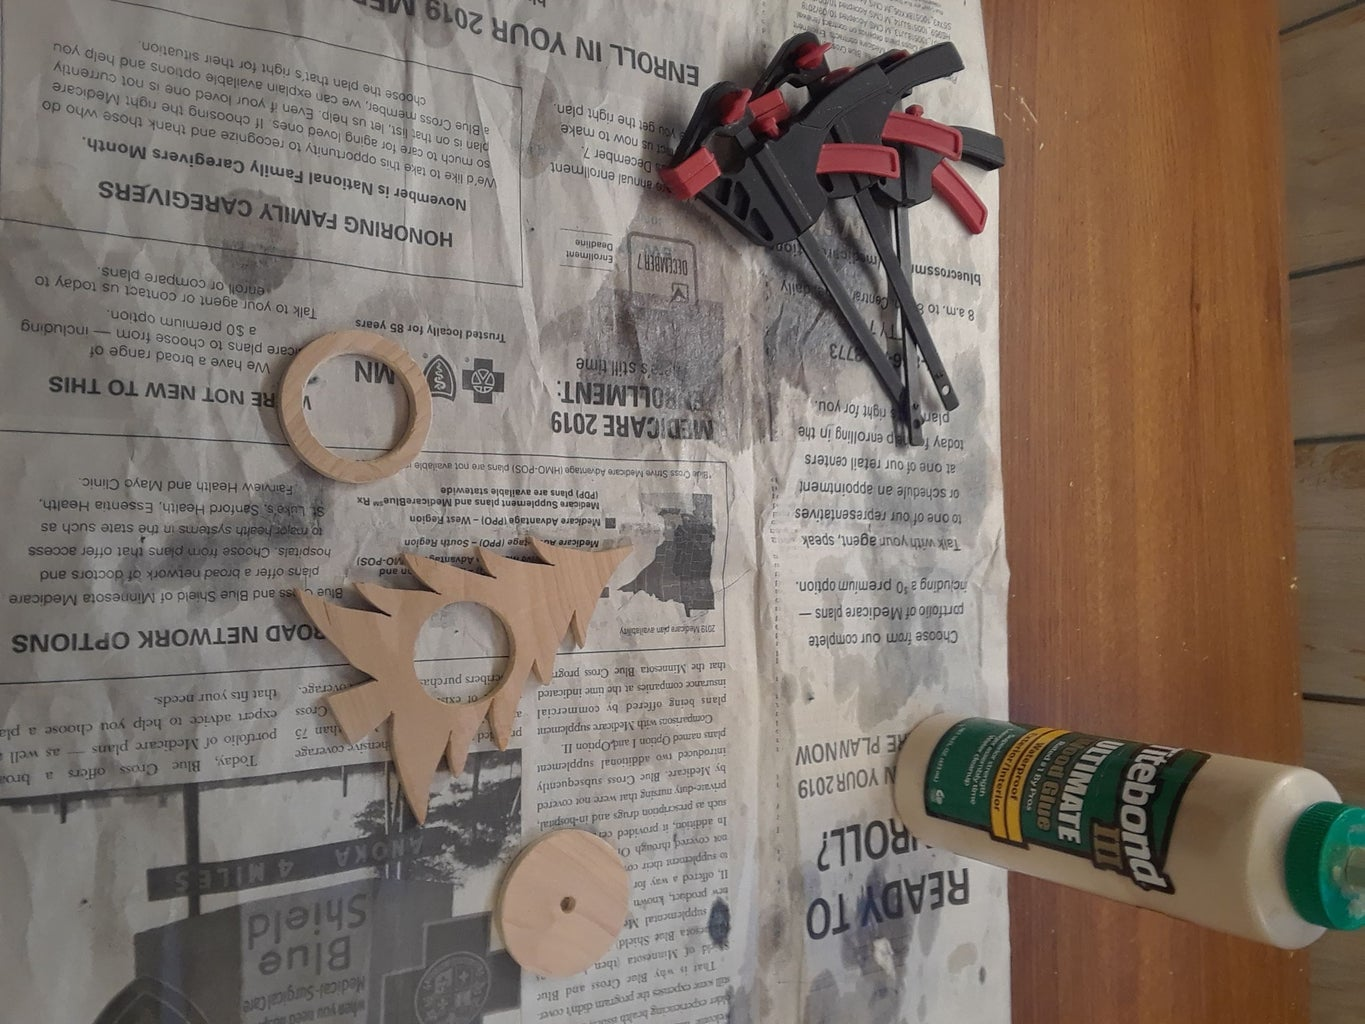 Gluing Everything Together